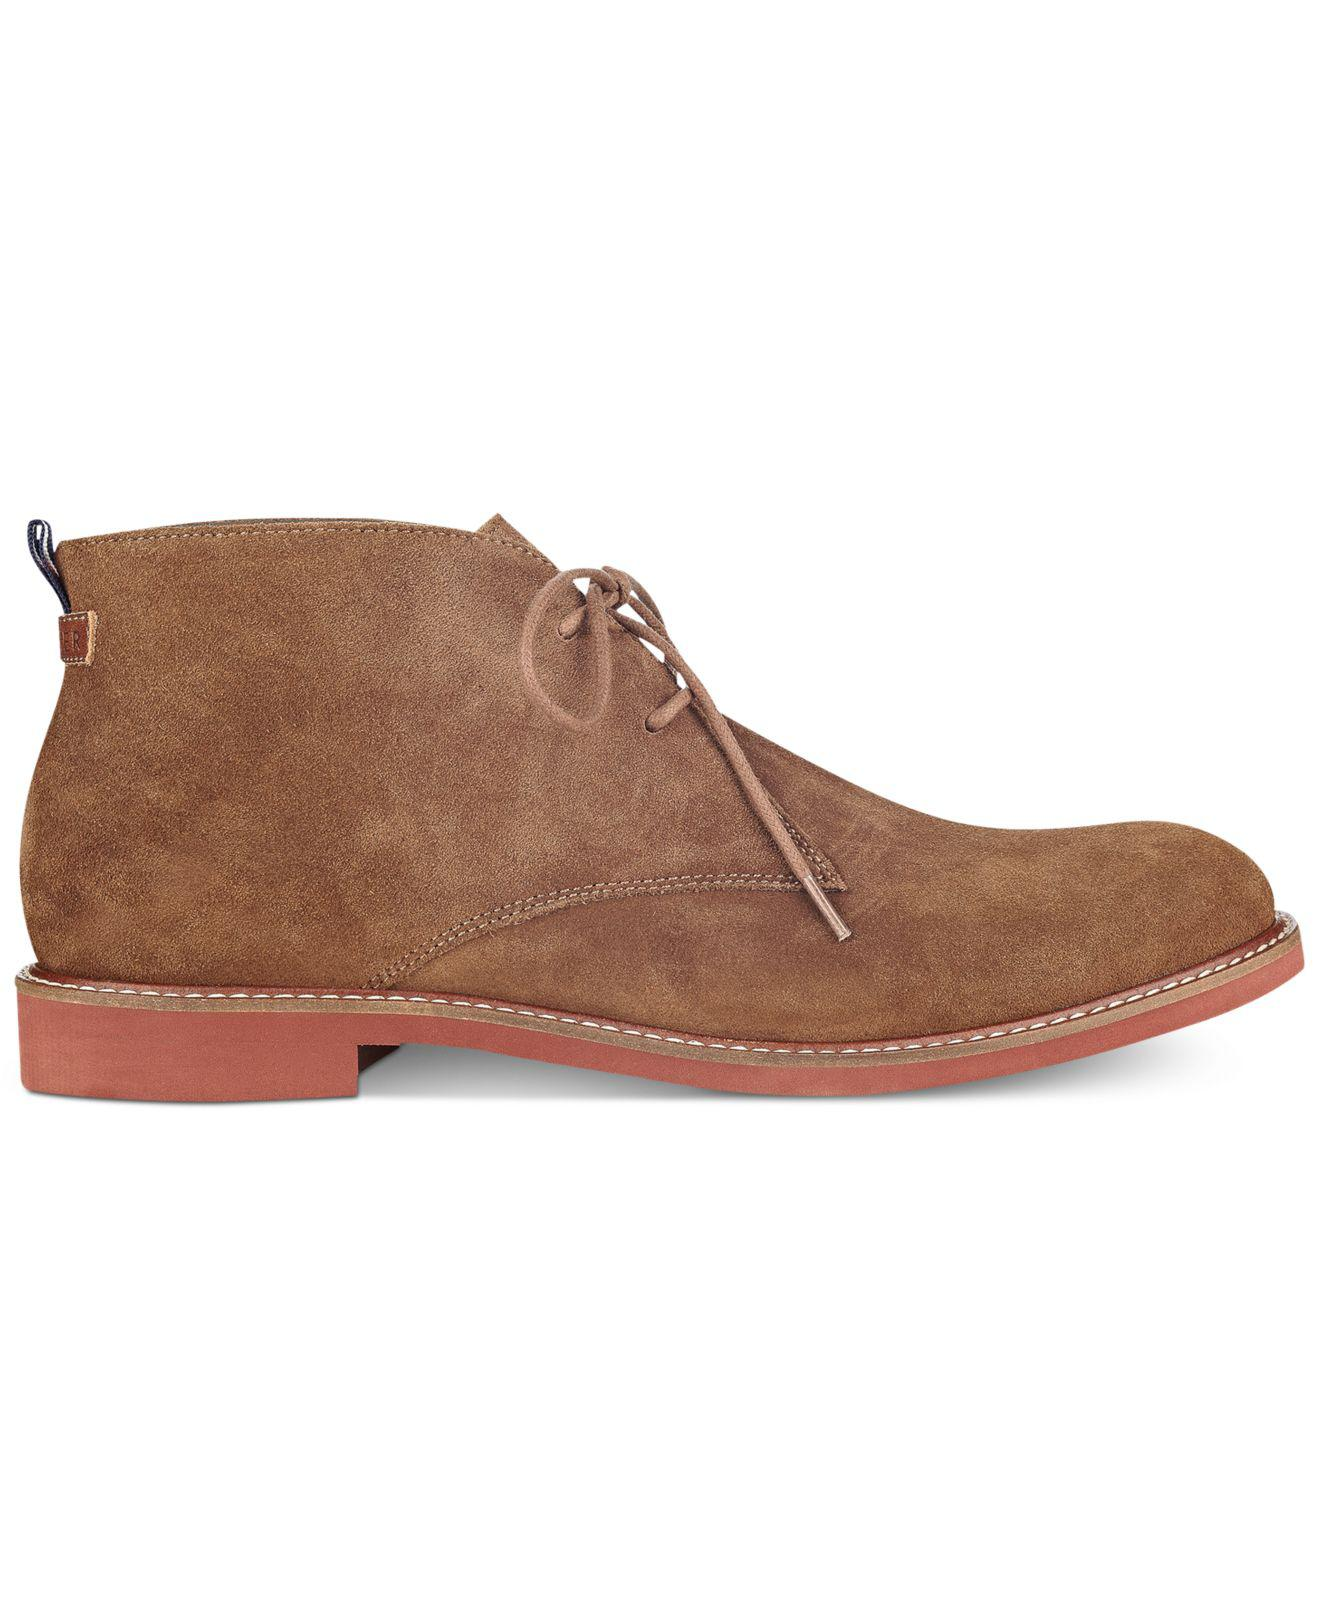 64dacab40d261e Lyst - Tommy Hilfiger Men s Gervis Chukka Boots in Brown for Men